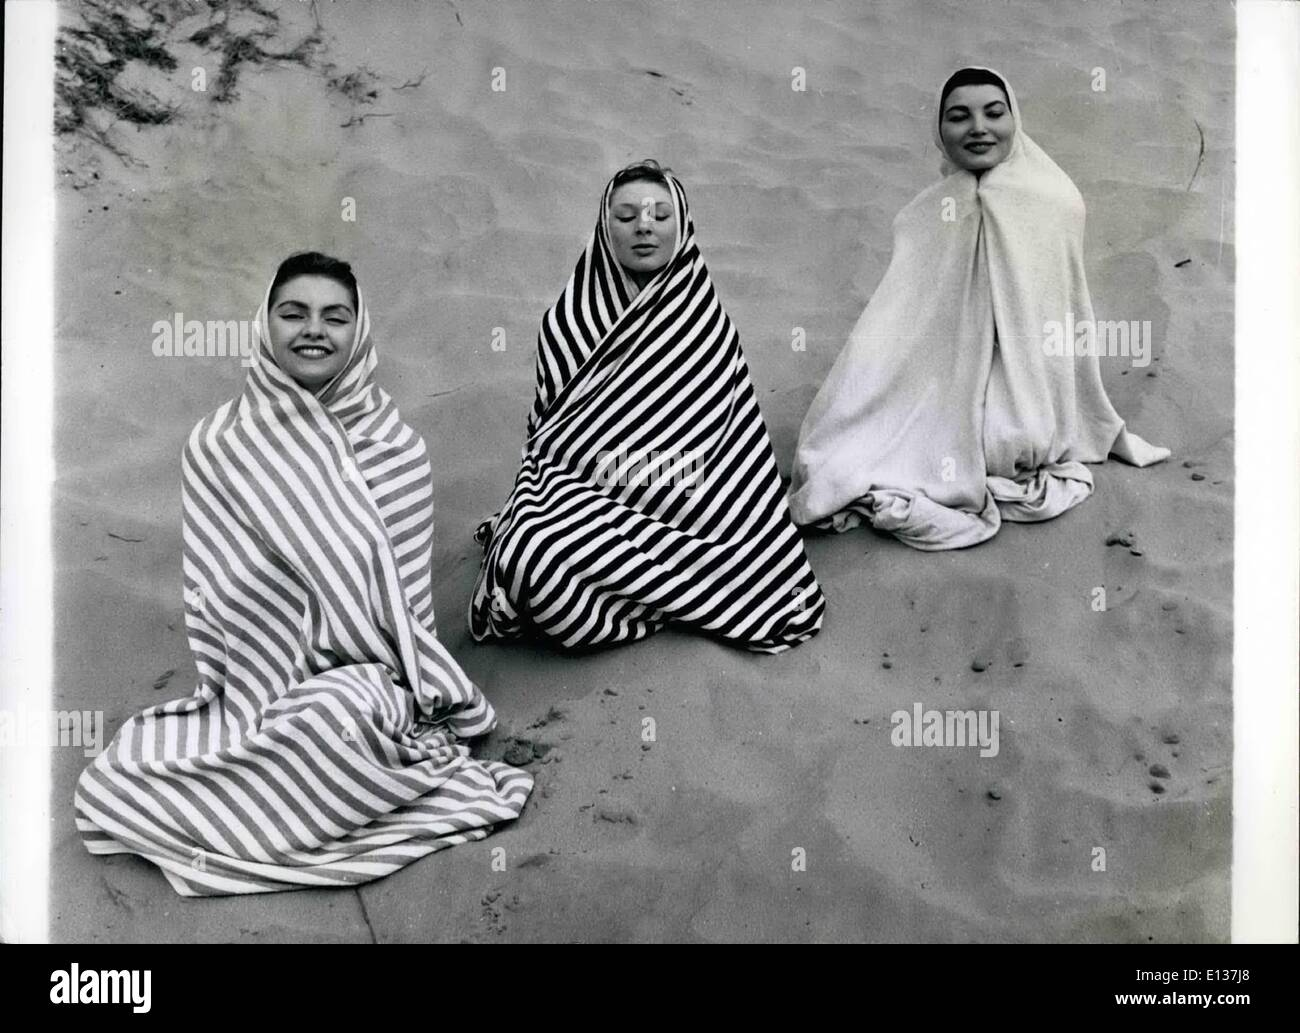 Feb. 29, 2012 - Arabesque: Where Are The Camels And The Palm Trees? Three Smart Girls Use Their Bath Towels As Cloaks And Make This Amusing Picture As They Enjoy Themselves On Camber Sands In Suss Ex. All Are Aida Foster Girls. They Are L-R: Wendy Graham, 18, Patricia Lawrence, 16, And Betty Le Beau, 24. - Stock Image